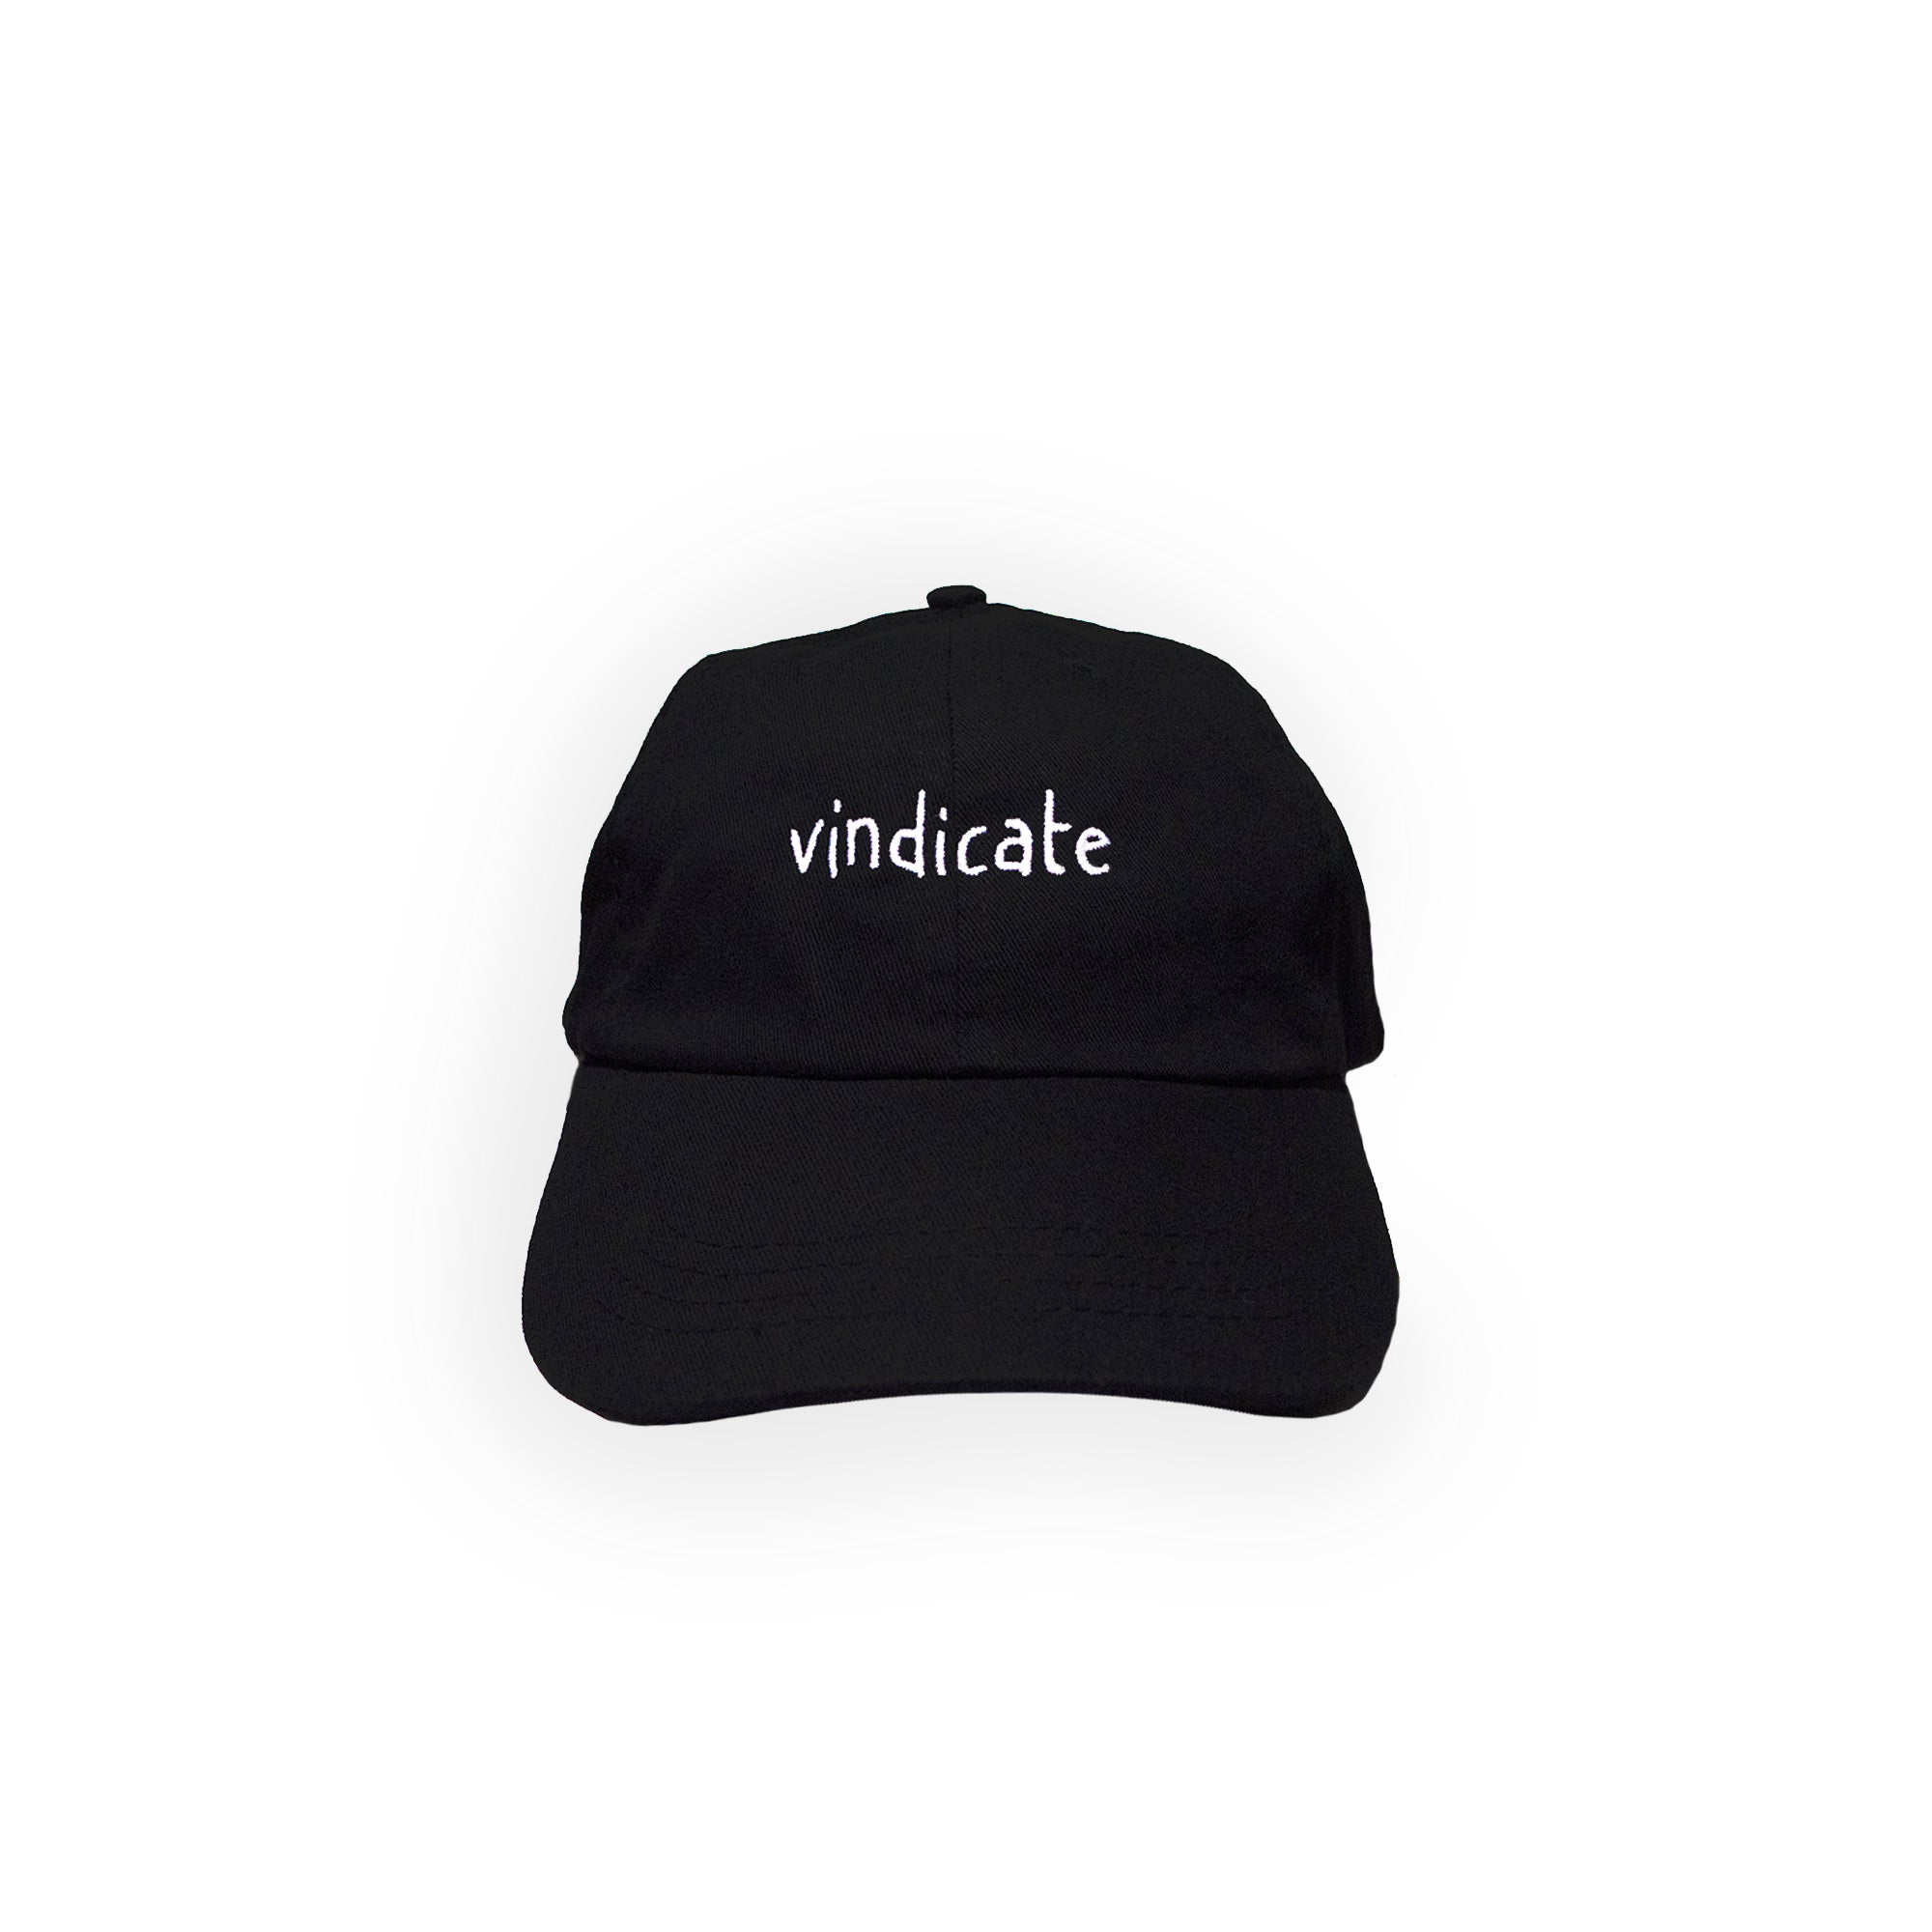 Black 6-panel dad cap with vindicate handstyle text embroidered in centre